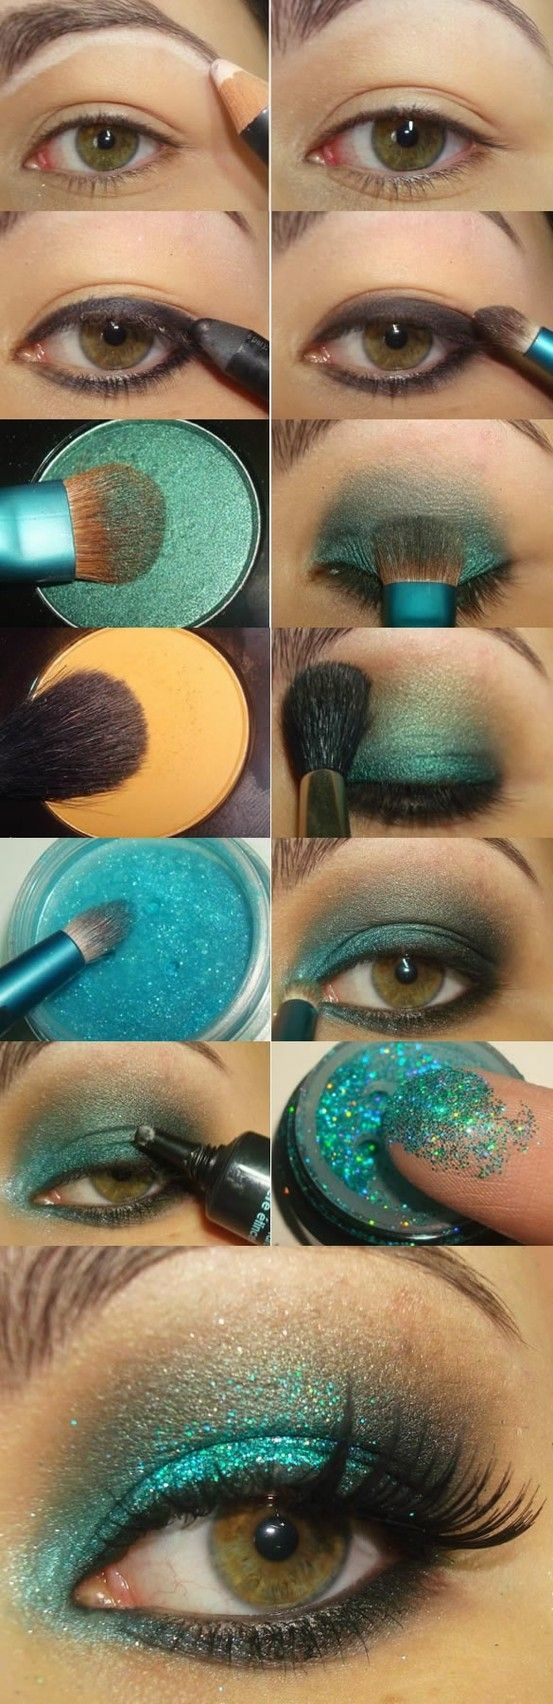 Best Eye Makeup Tutorials   Everyday And Bridal   Prom And Special Occasions   Latest Fashion   Beauty Tips   Health   Fitness   Skin Care   Wedding   Make up and Cosmetic